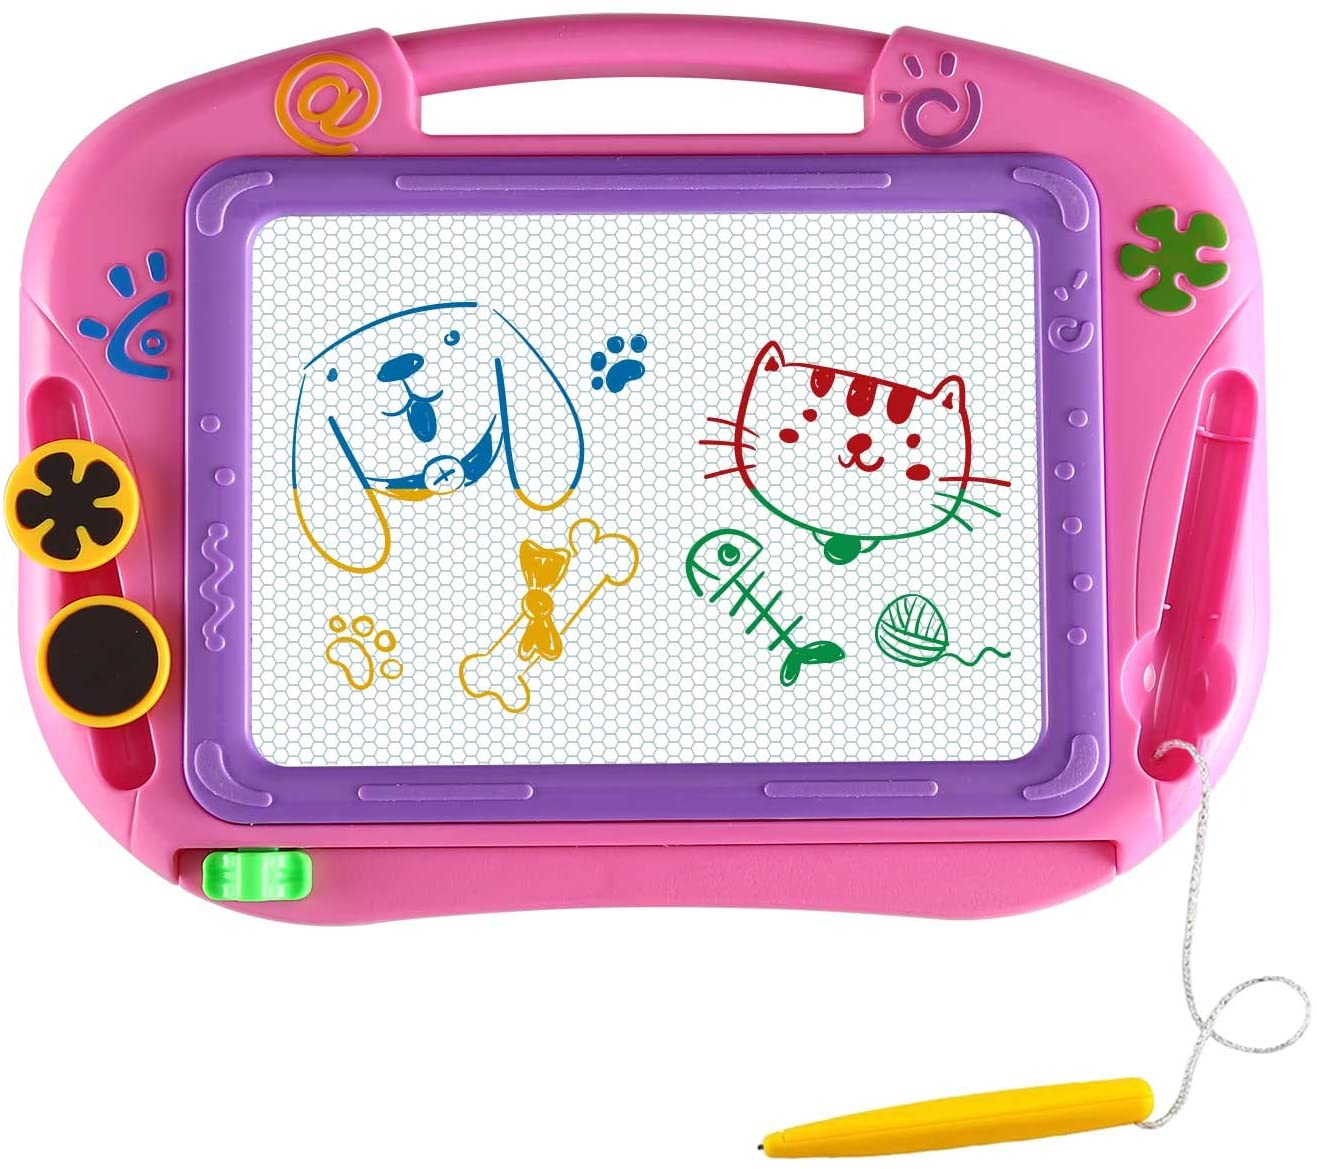 Top 10 Best Magnetic Doodle Drawing Board For Kids (2020 Reviews & Buying Guide) 4